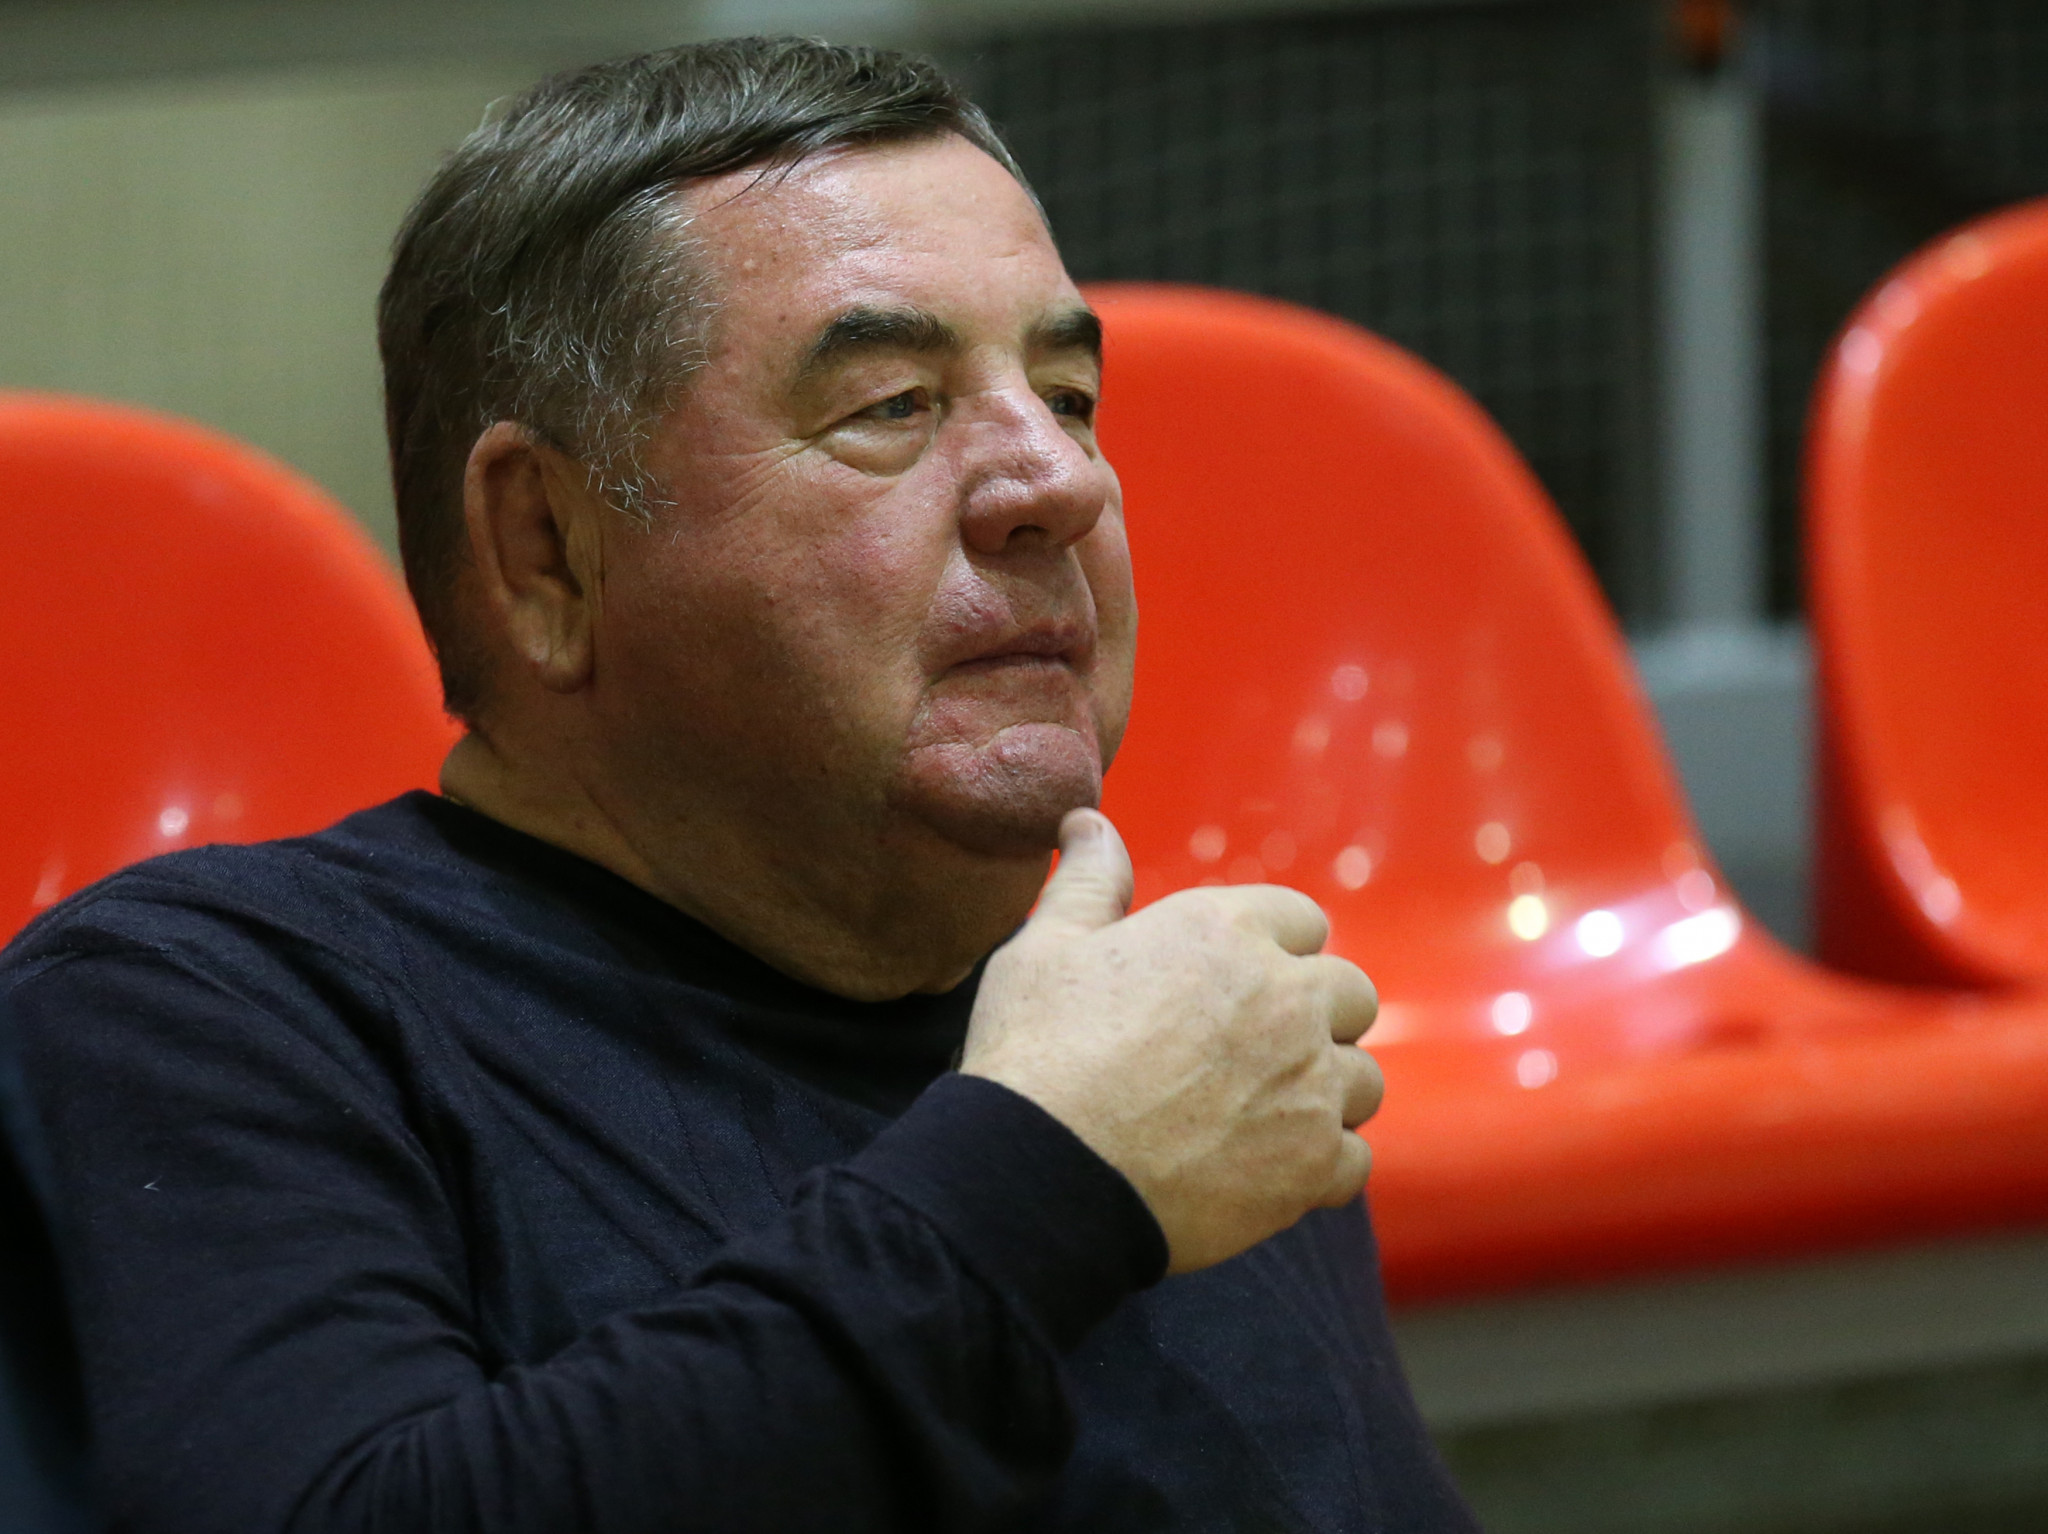 International Sambo Federation President Vasily Shestakov hopes the World Sambo Championships can be a catalyst for sambo's Olympic programme inclusion ©Getty Images